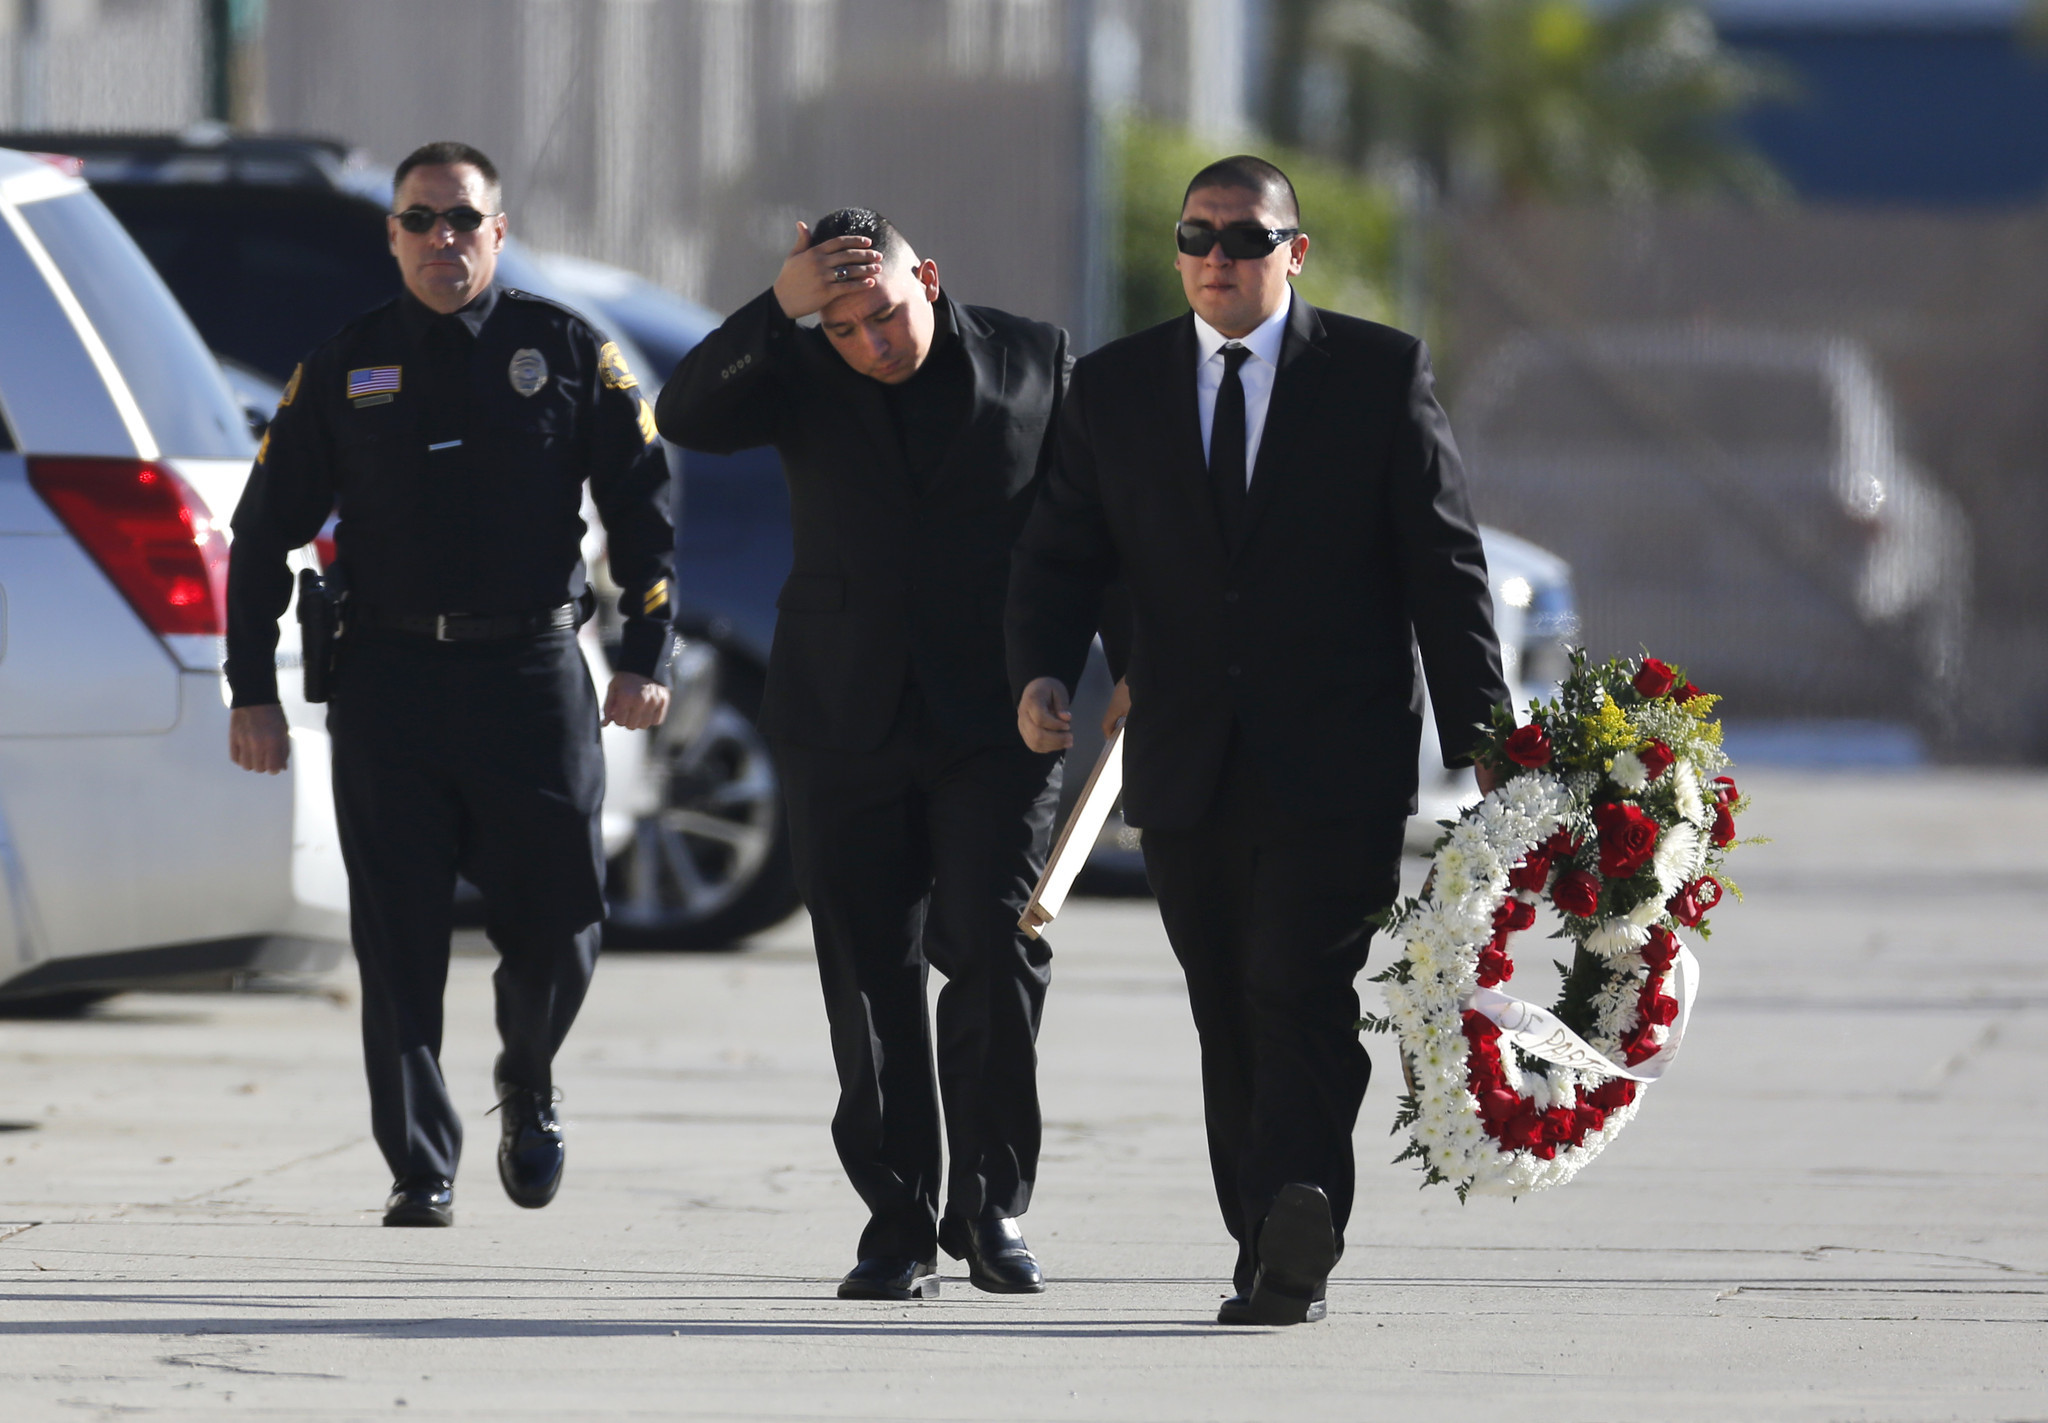 Couple behind San Bernardino terrorist attack is buried in Southern California - Hoy